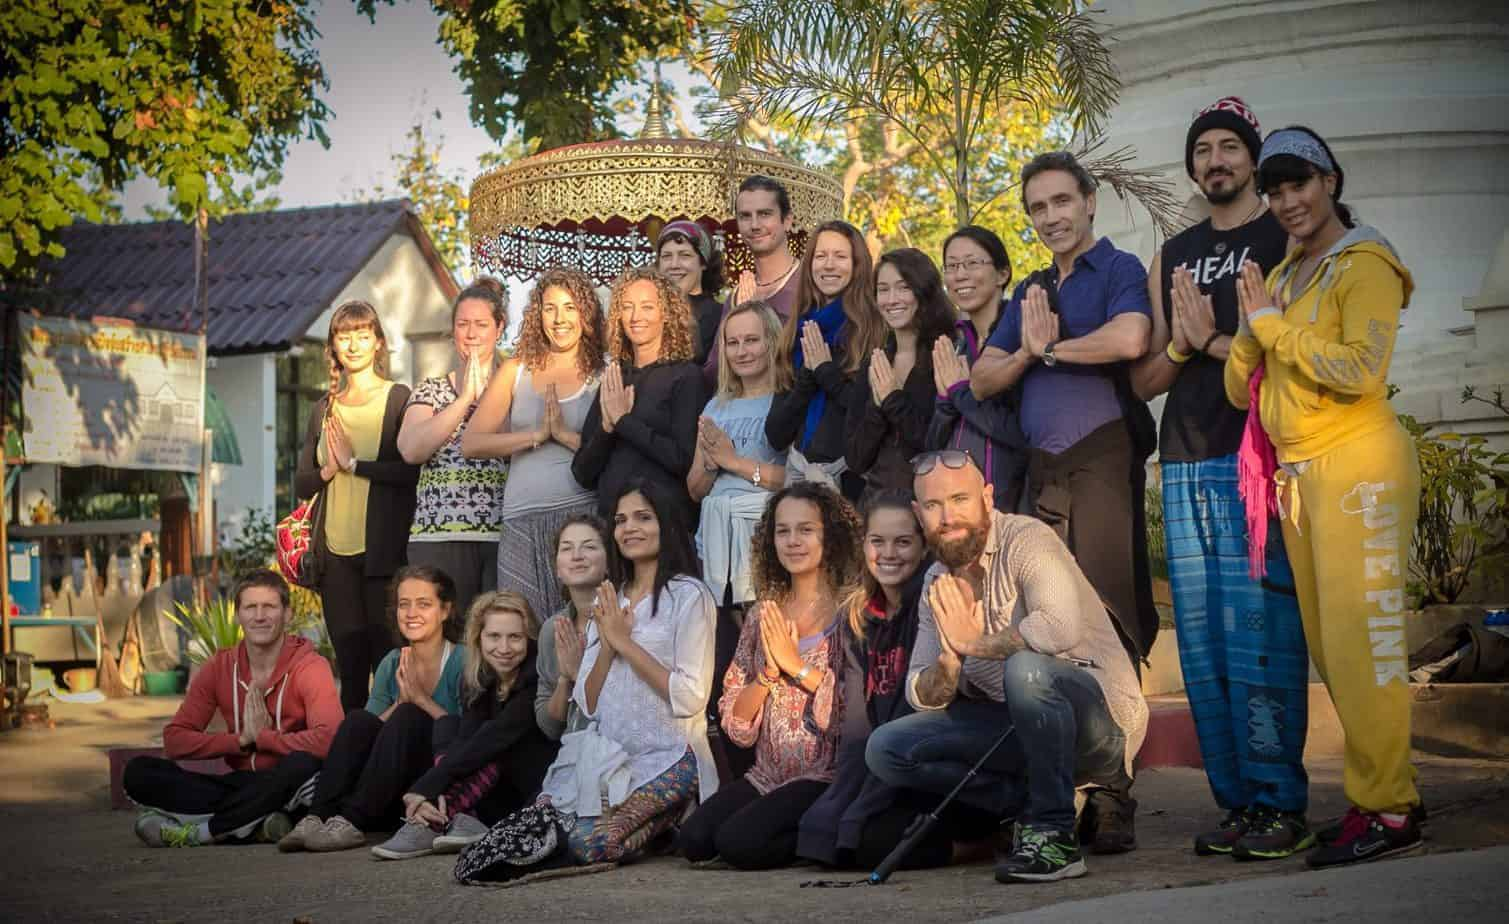 Students on Wise Living Yoga's Teacher Training Course last year in Chiang Mai.